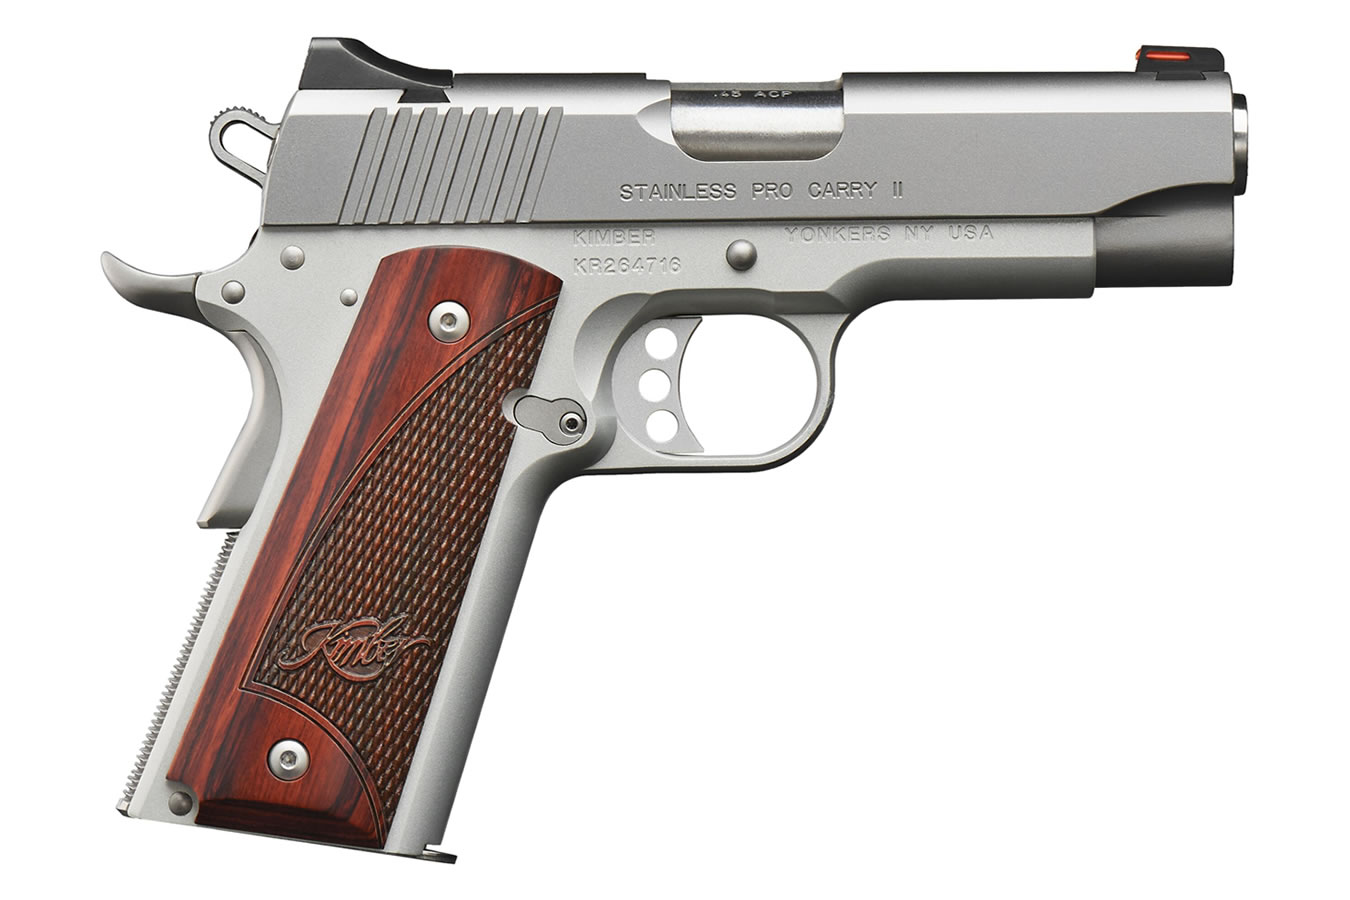 No. 17 Best Selling: KIMBER STAINLESS PRO CARRY II .45 ACP